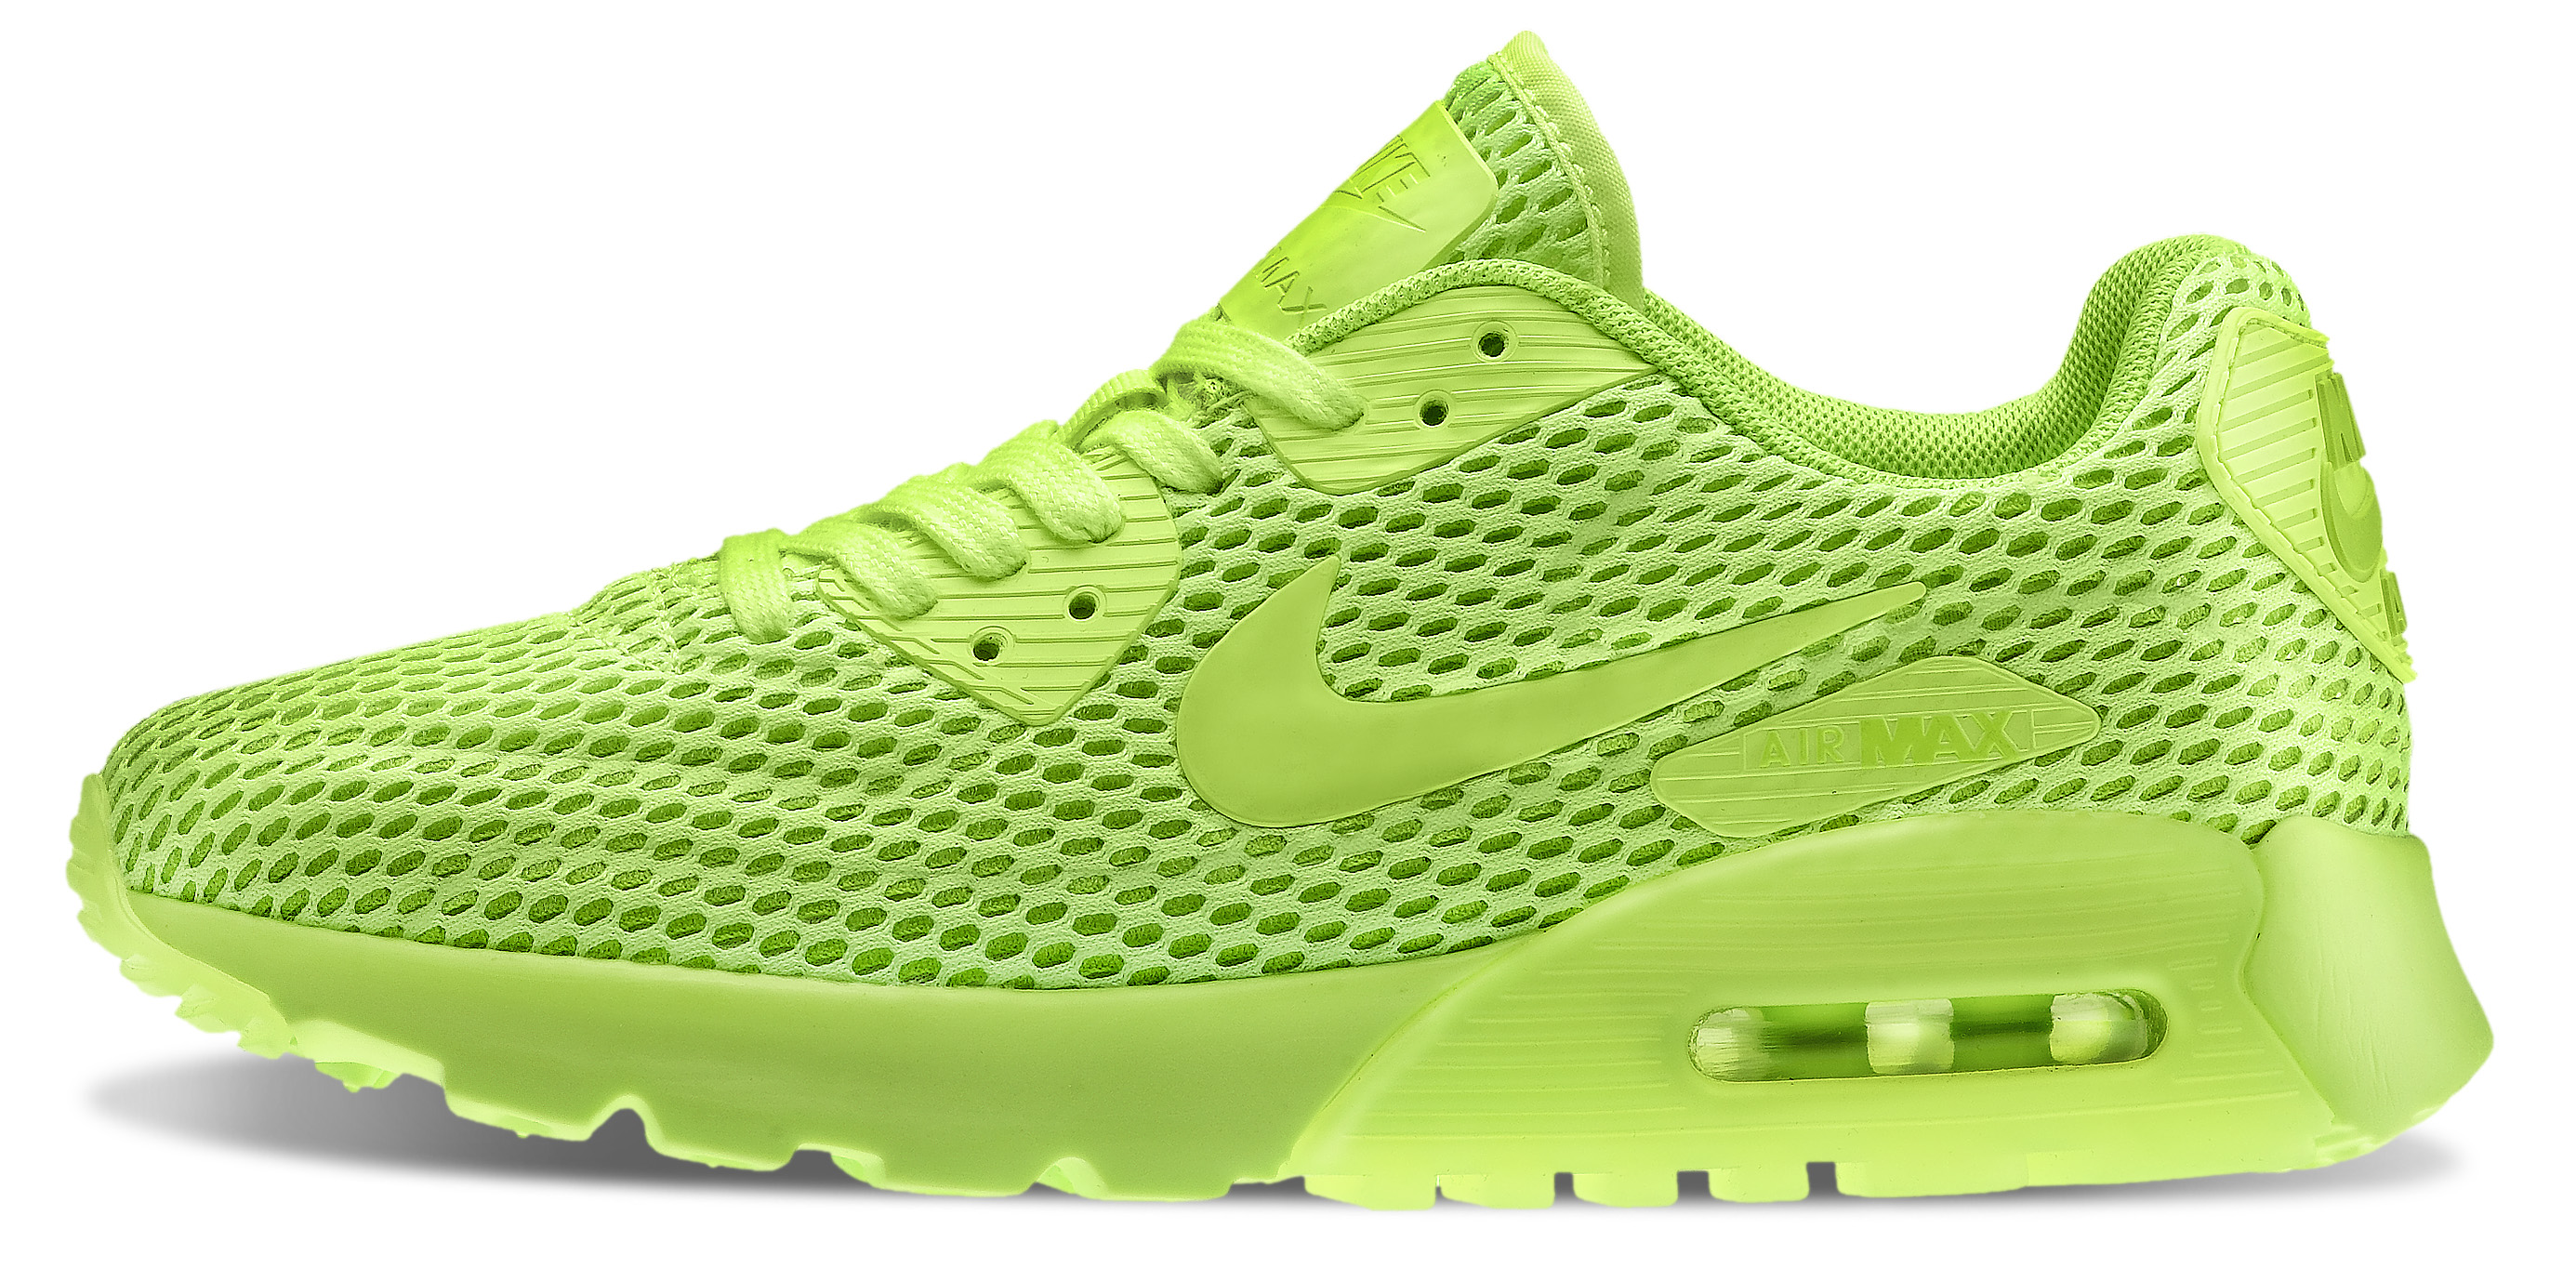 Nike Air Max 90 da AW LAB euro 150,00 (3) I Love Sneakers